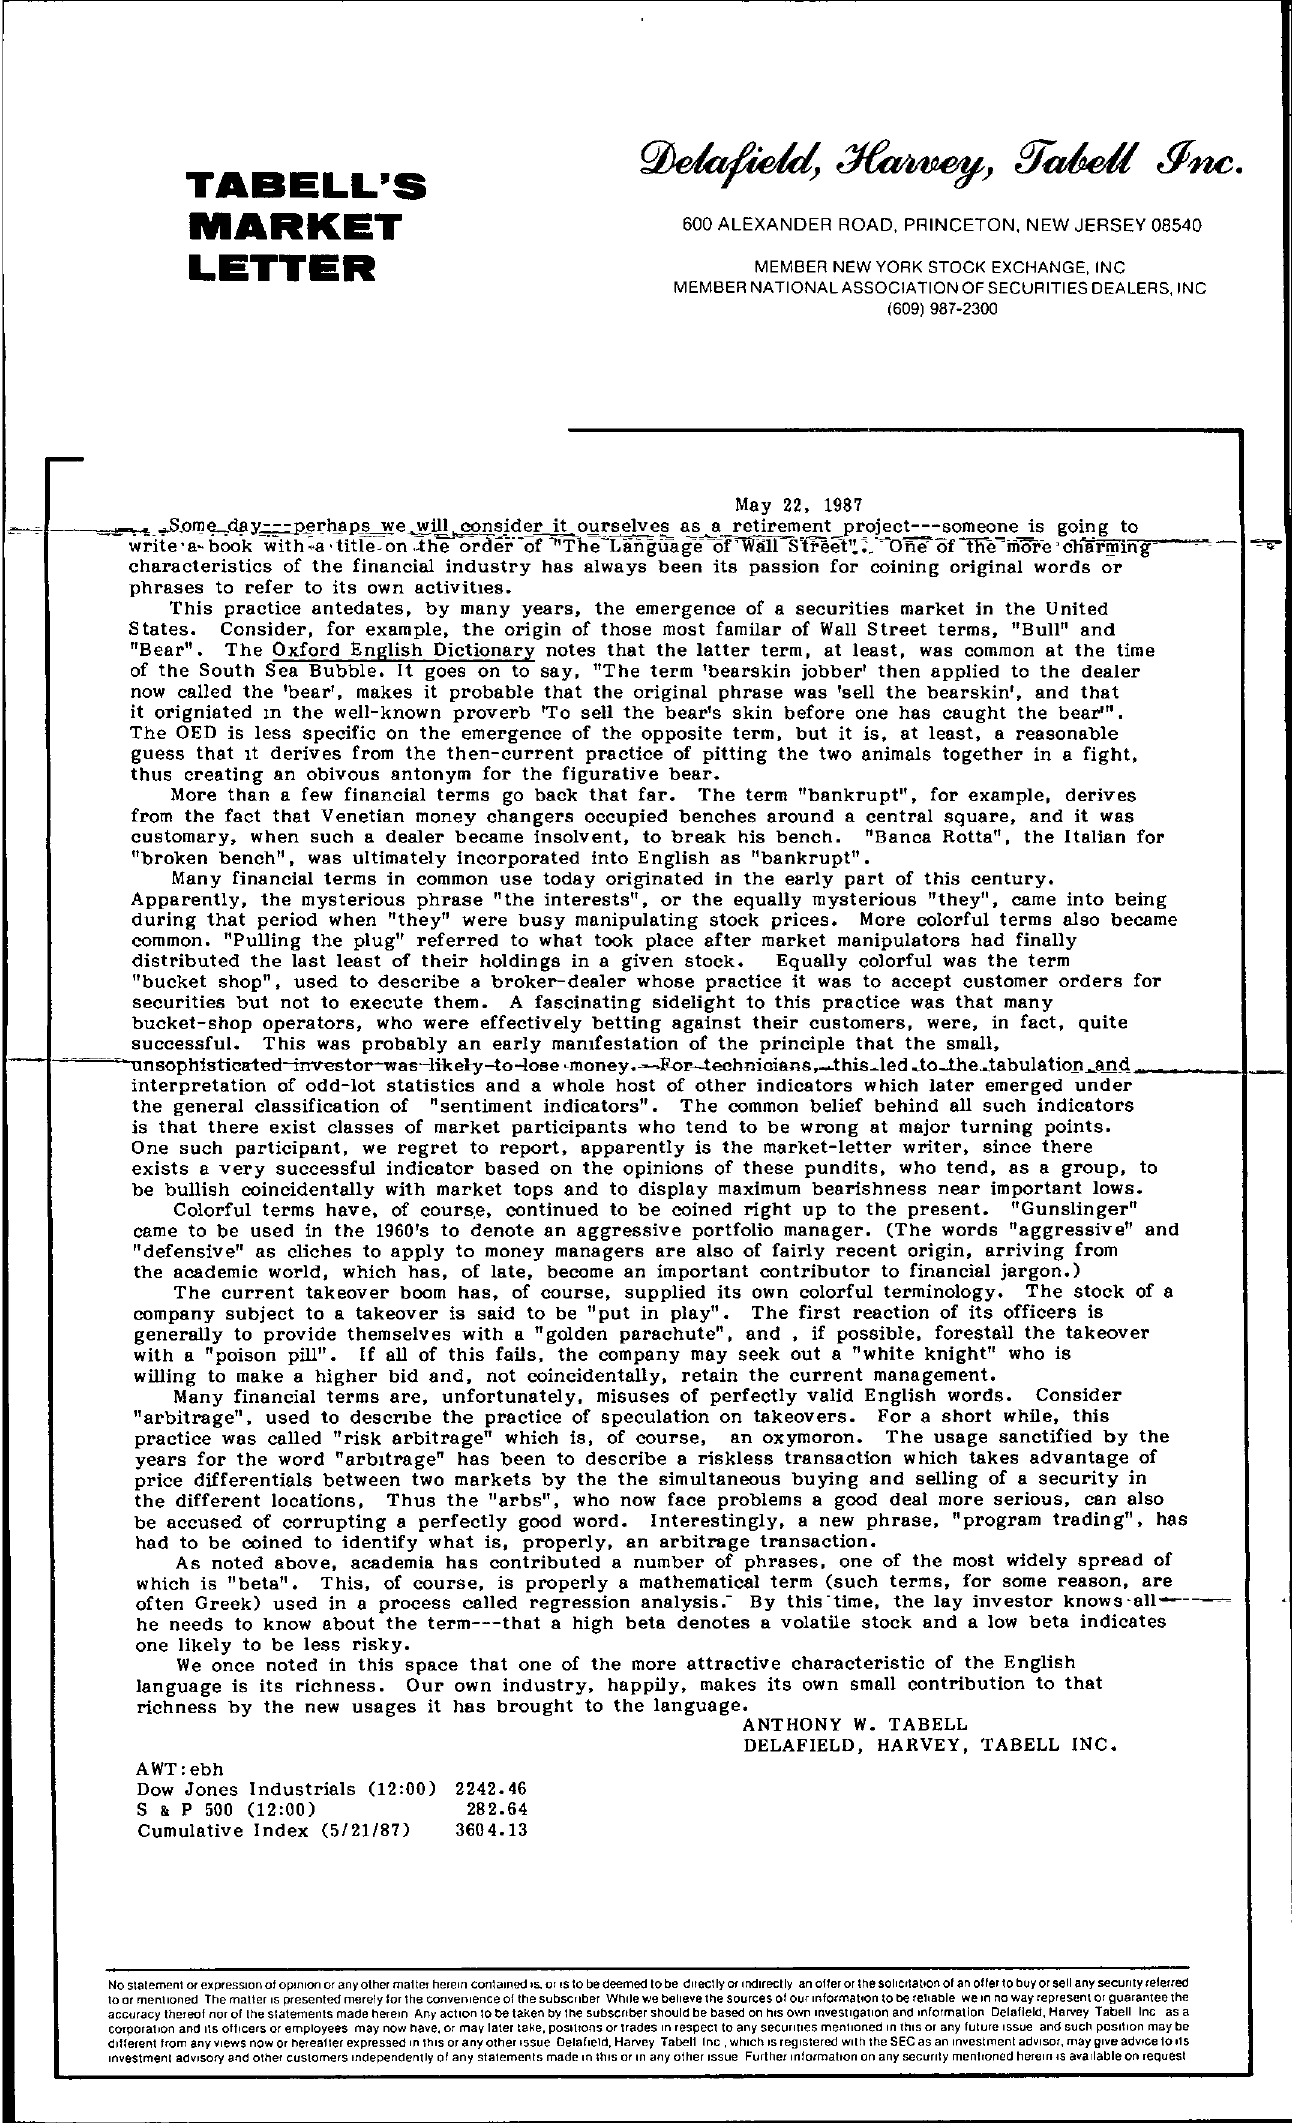 Tabell's Market Letter - May 22, 1987